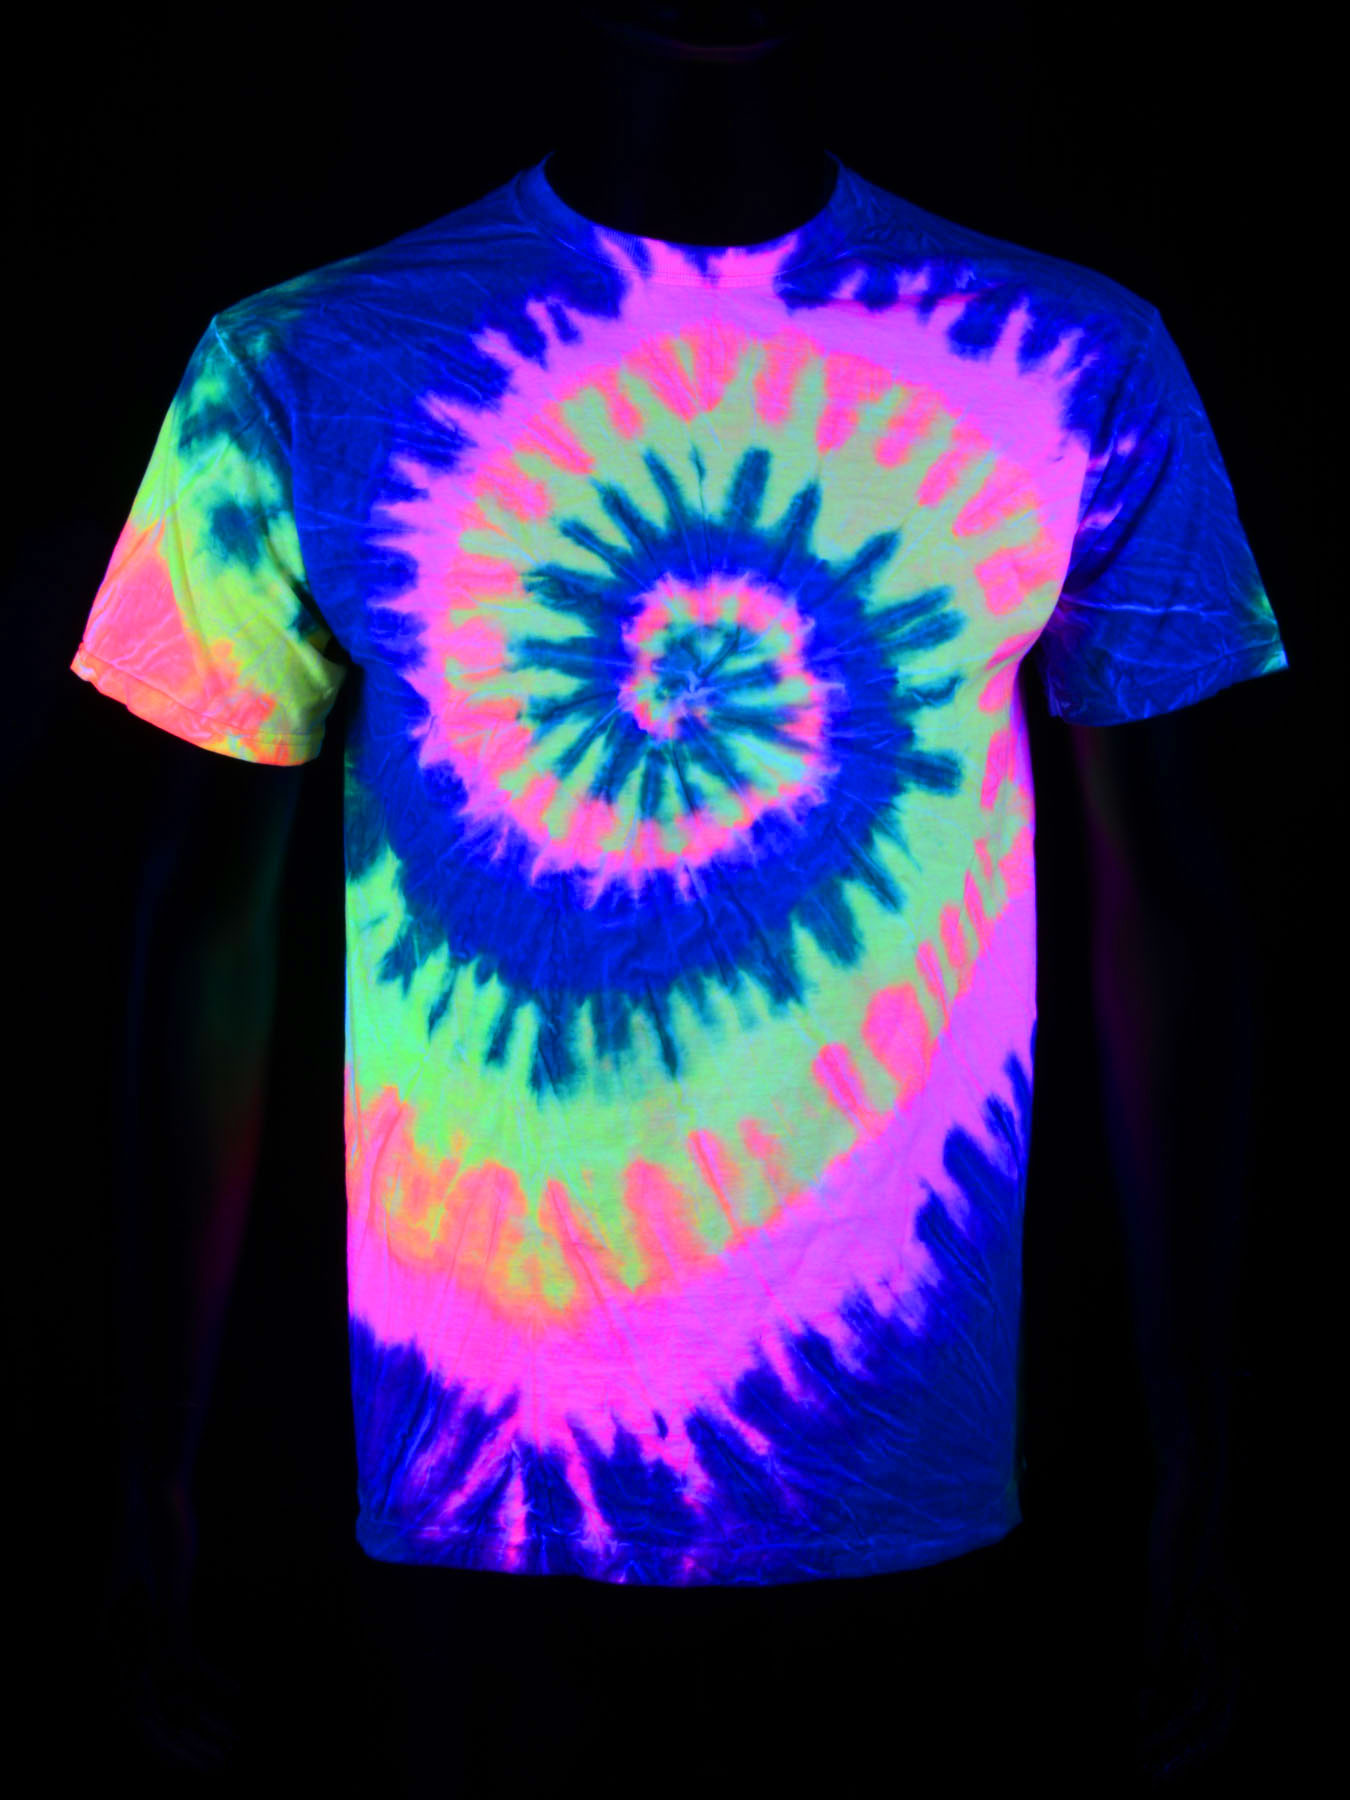 schwarzlicht t shirt sport damen herren kinder blacklight neon junge m dchen ebay. Black Bedroom Furniture Sets. Home Design Ideas